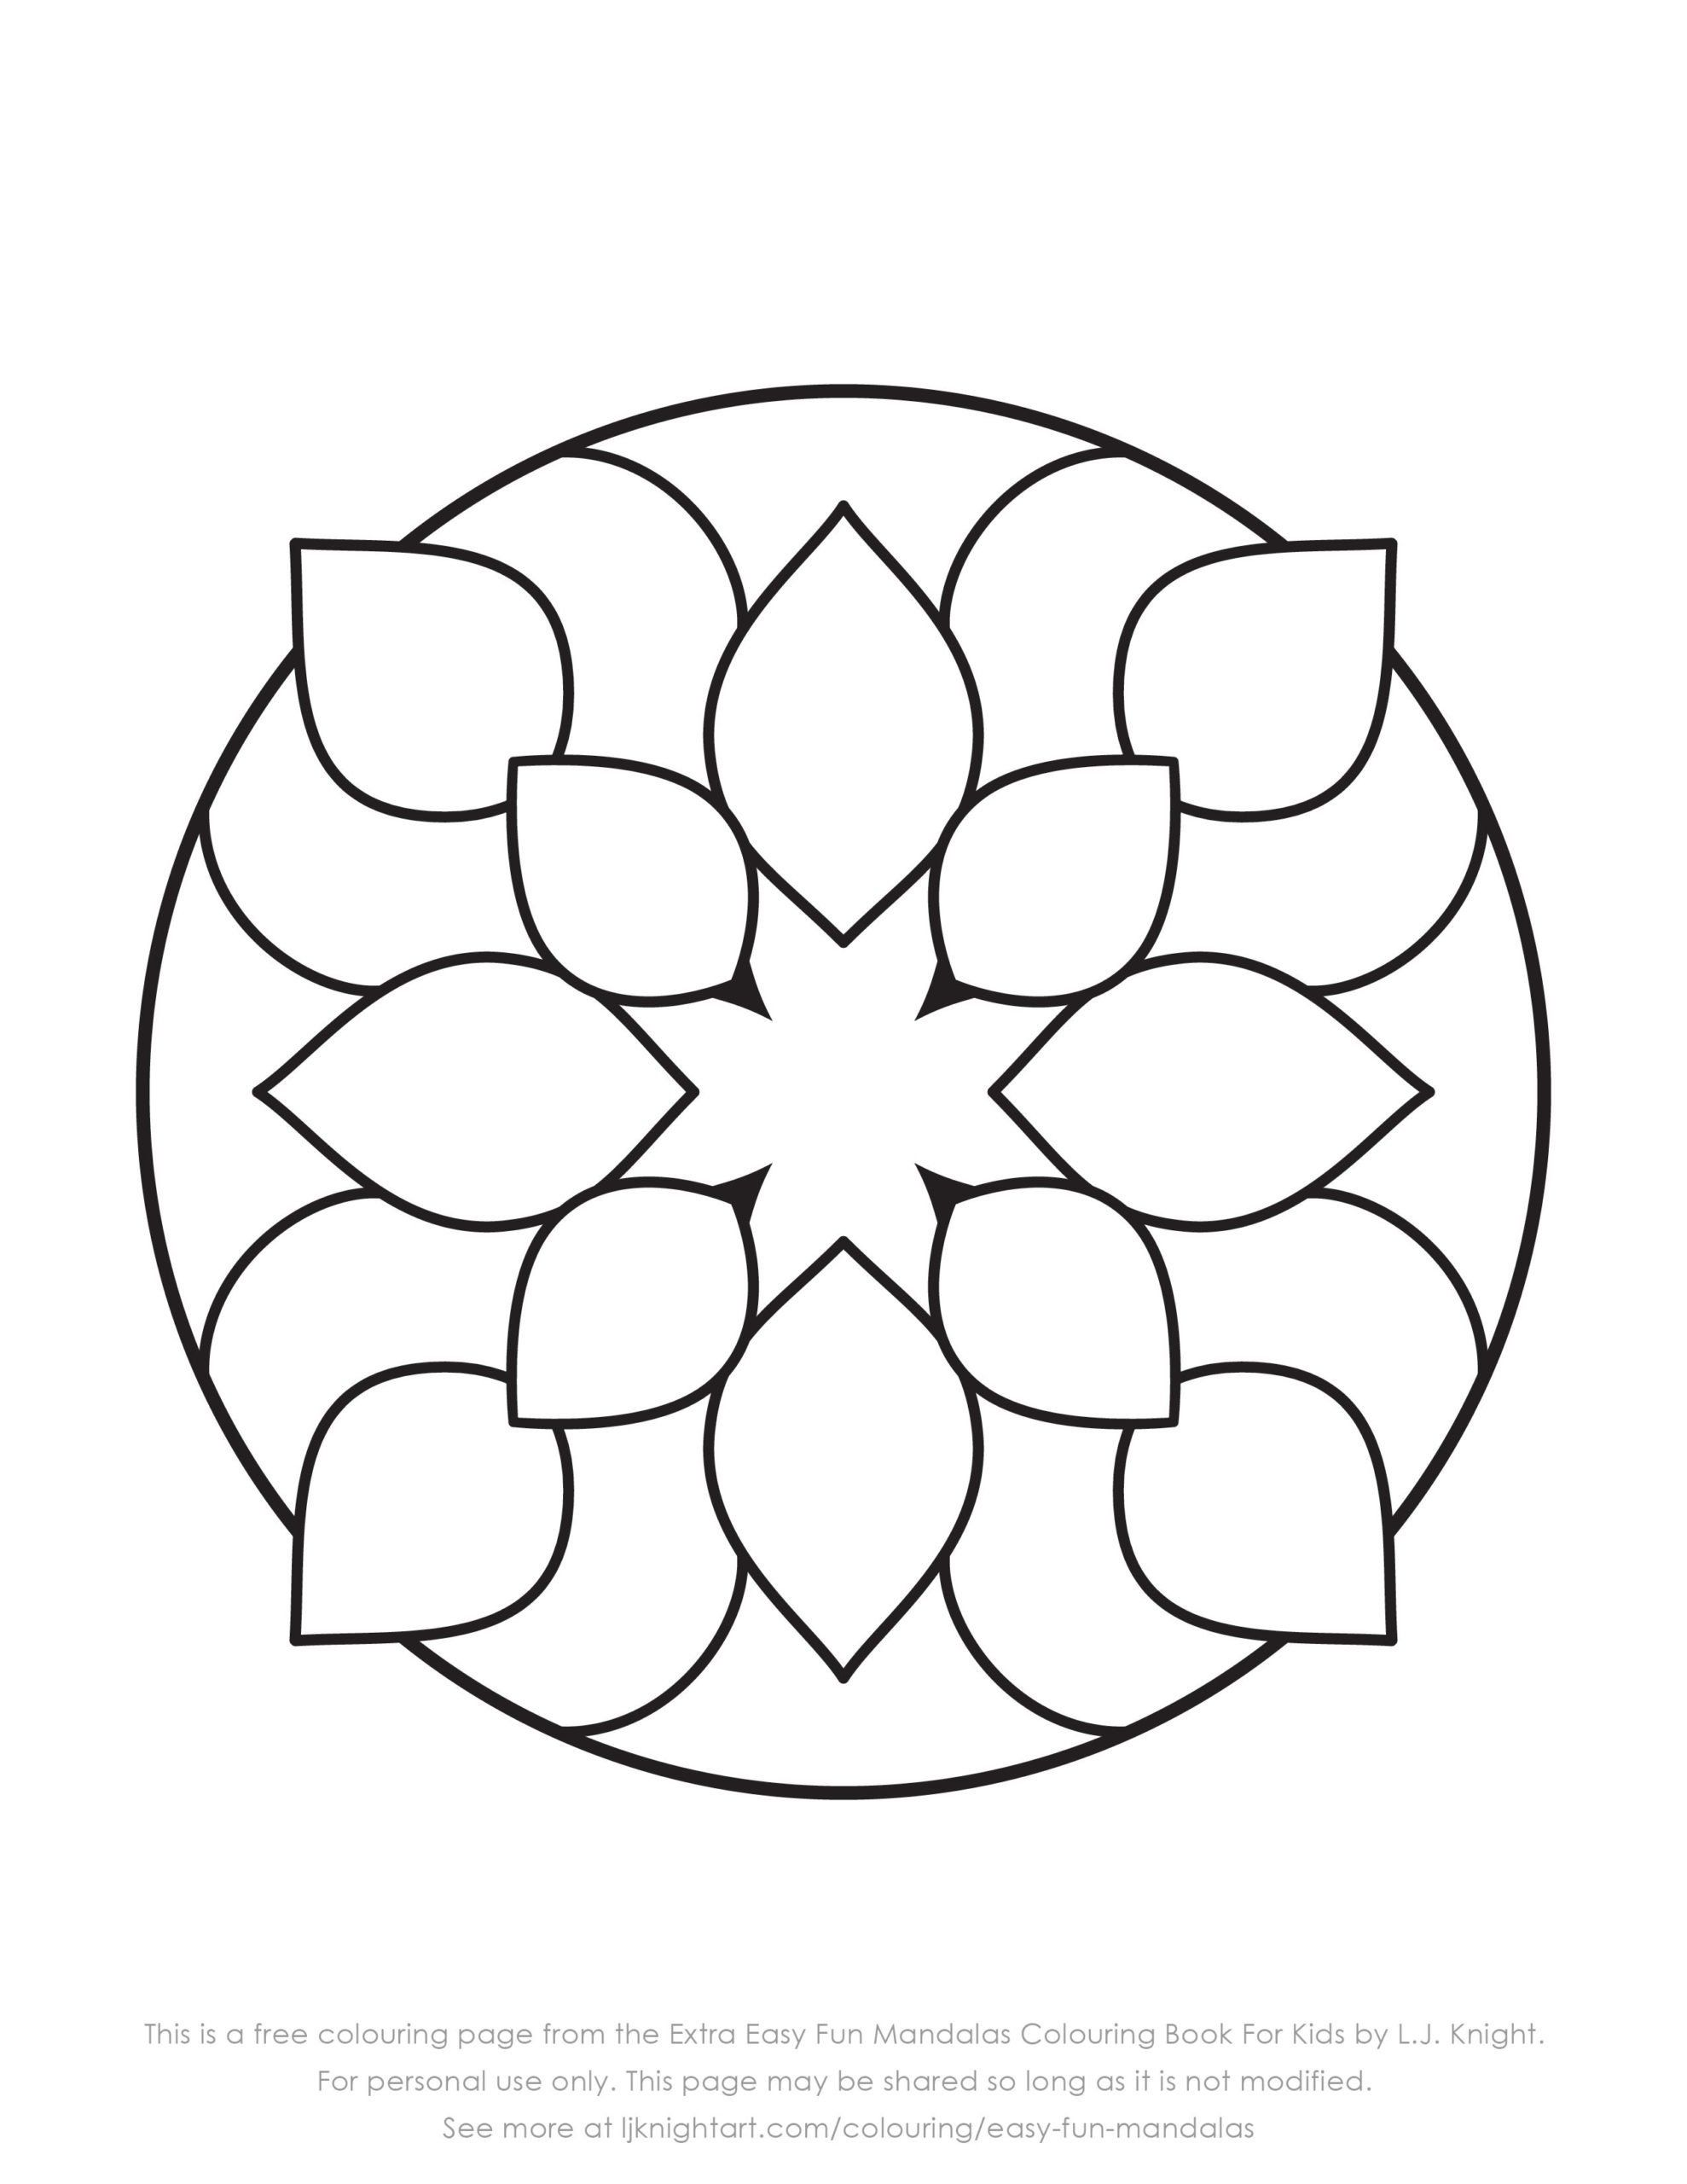 Simple Mandala Flower Coloring Pages Coloring Pages Coloring Book Simple Mandala For Kids To In 2020 Mandala Coloring Pages Mandala Coloring Easy Coloring Pages